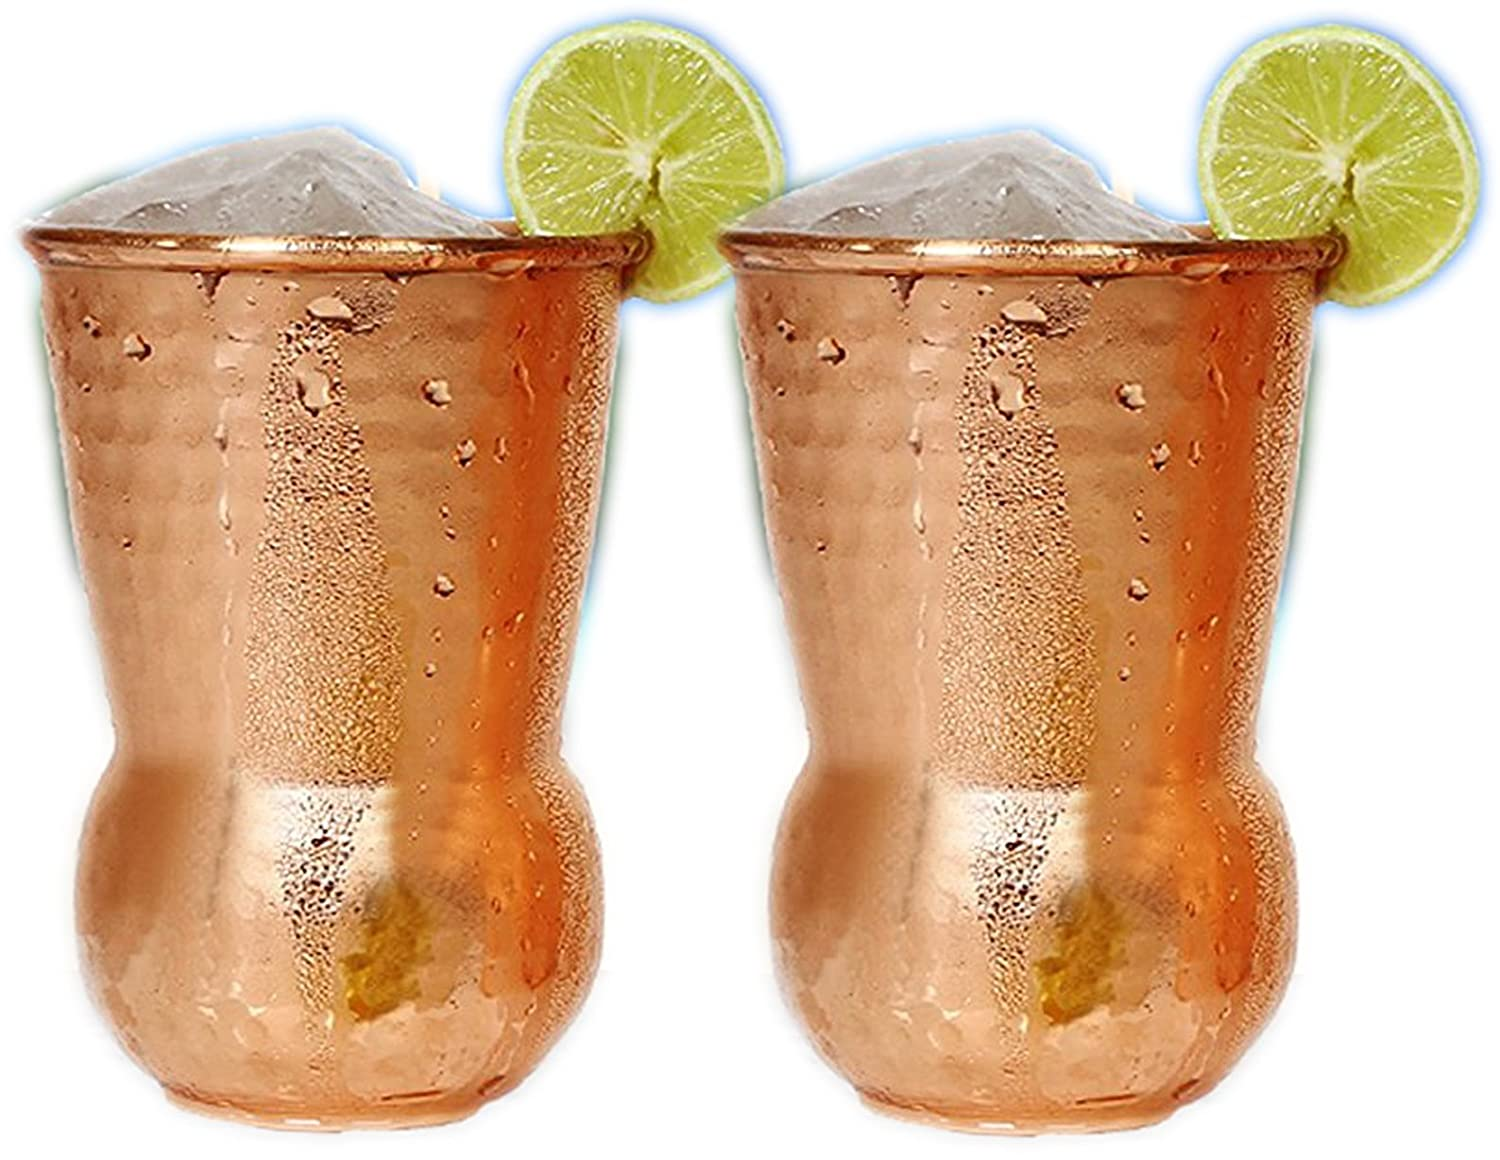 Hand Hammered Copper Tumbler Moscow Mule Mugs Copper Tumbler Cups pure copper glass for mule cocktail beverages soft drinks Handcrafted Copper Parijat Handicraft TUMBLER-PH-0002A